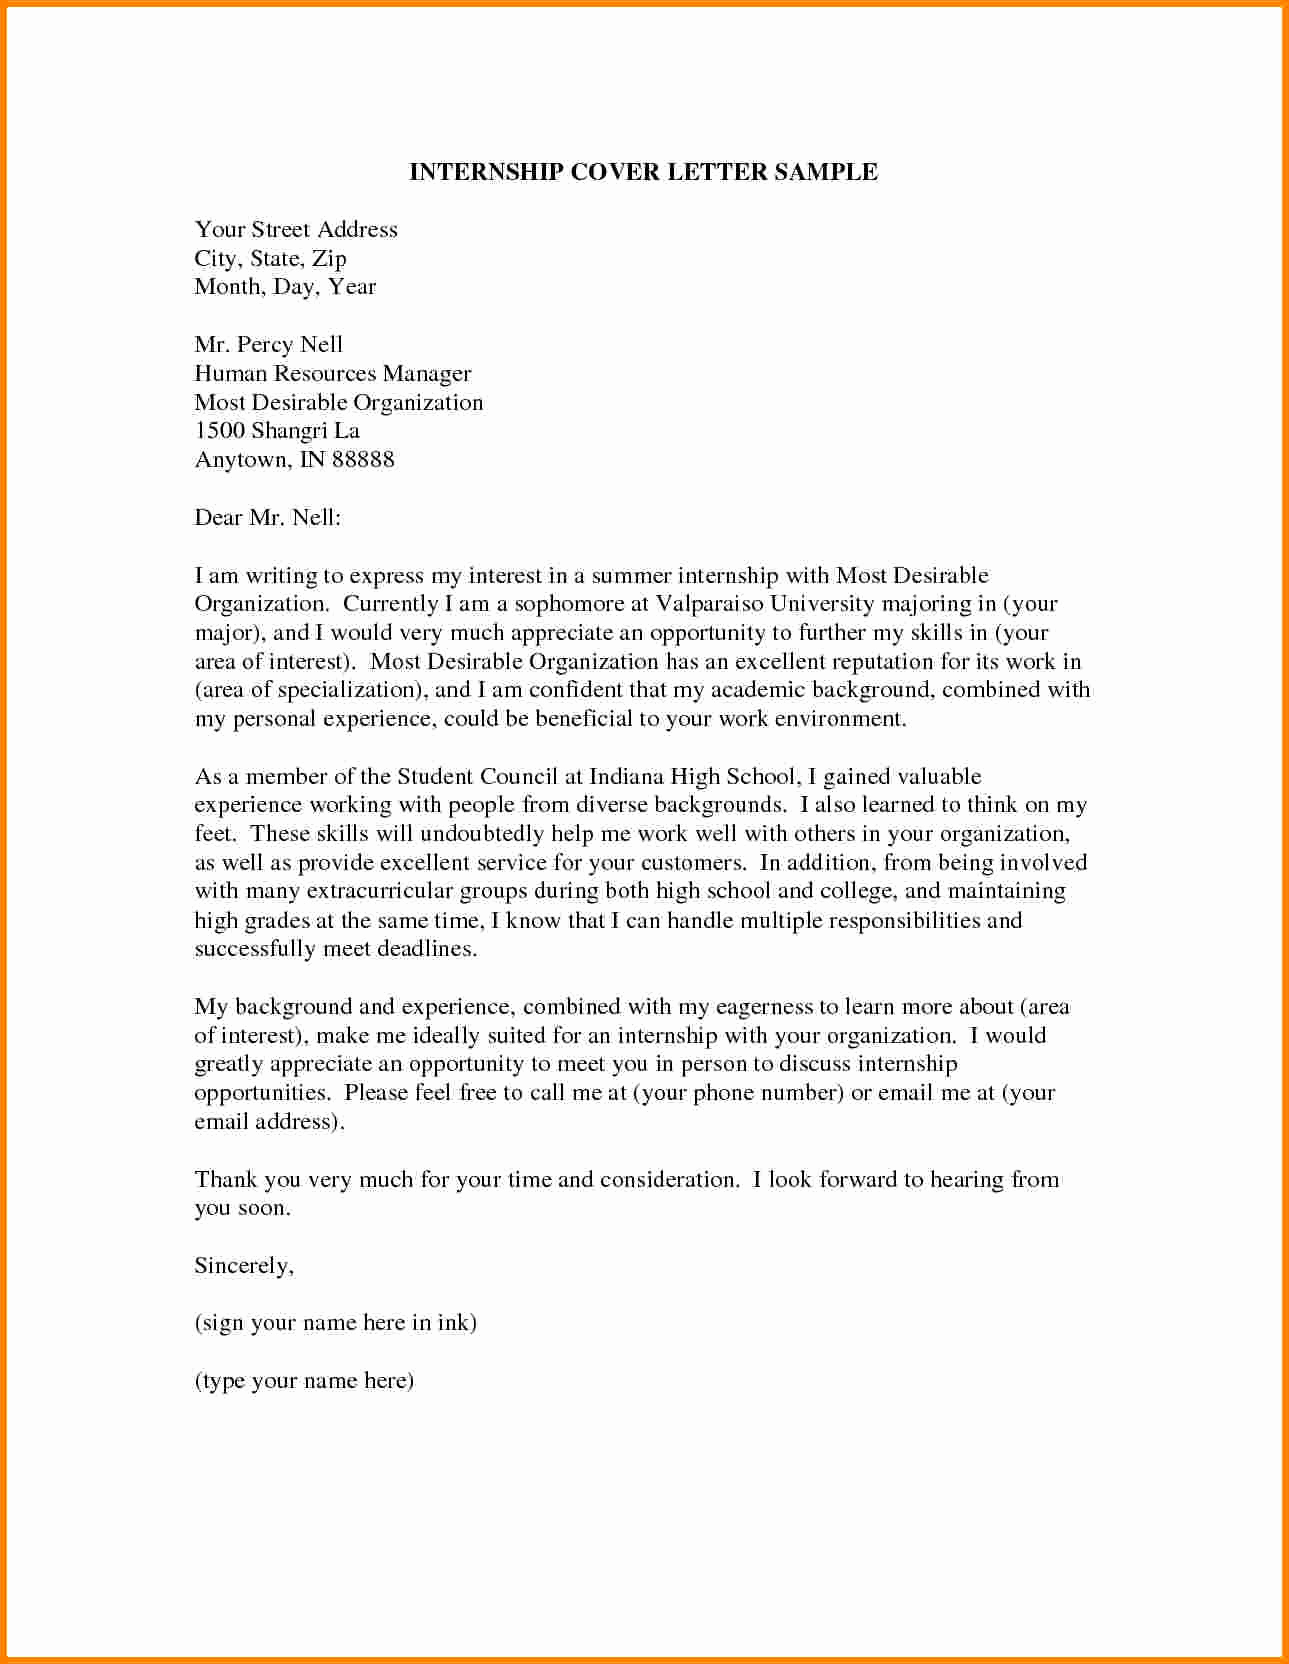 Internship Cover Letter Sample Unique 7 Statement Of Interest Cover Letter Example